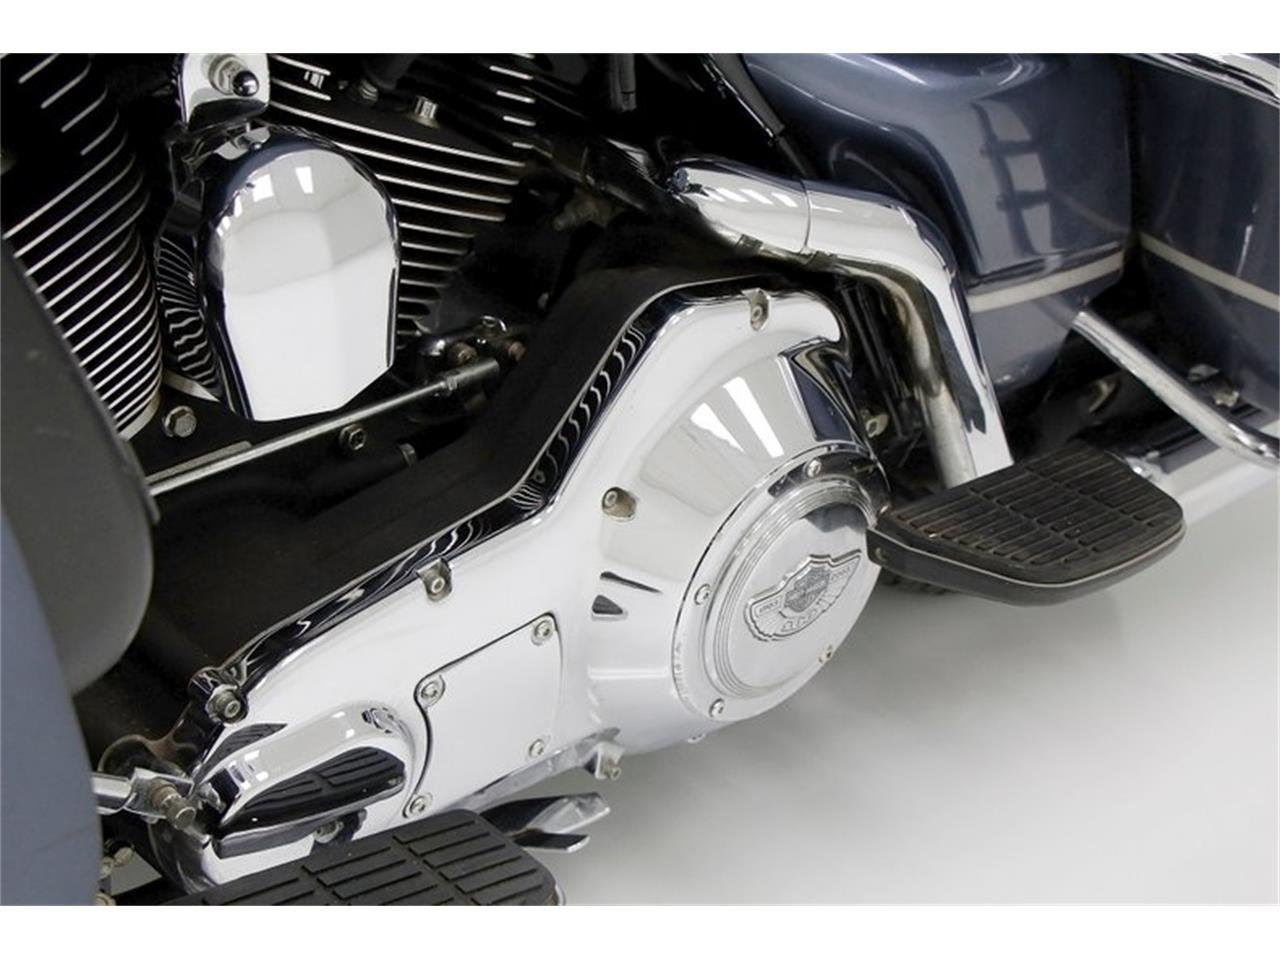 Large Picture of '03 Electra Glide - $35,000.00 Offered by Classic Auto Mall - Q3ZG